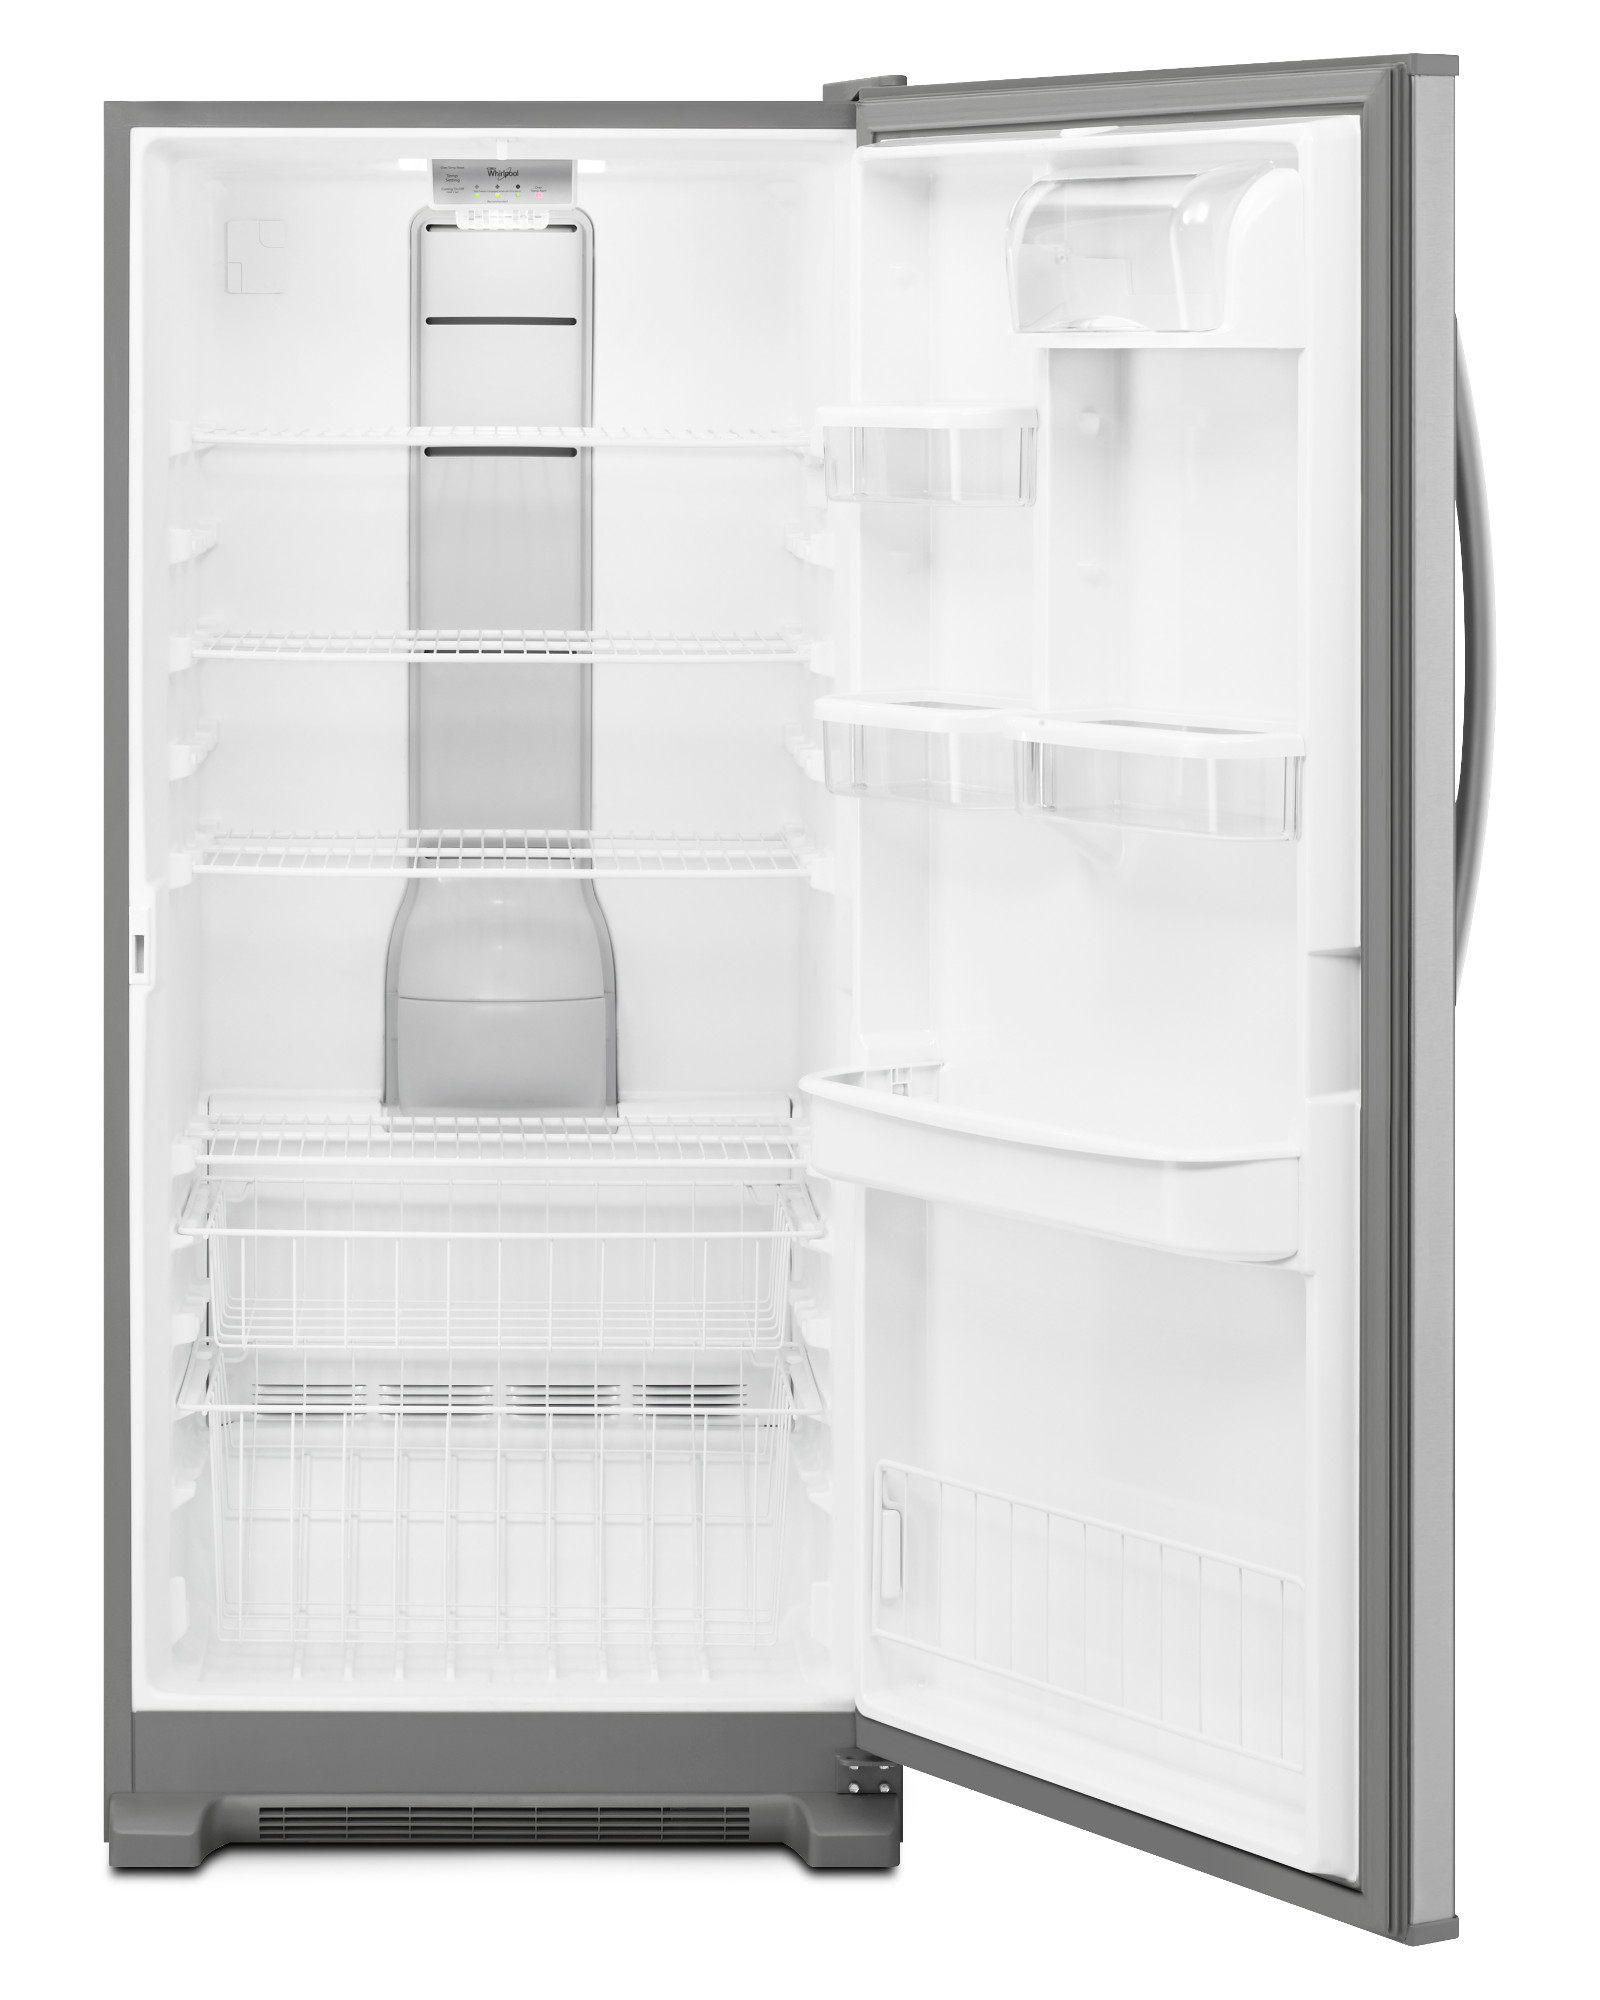 Whirlpool WZF79R18DM 18 cu. ft. Upright Freezer - Grey